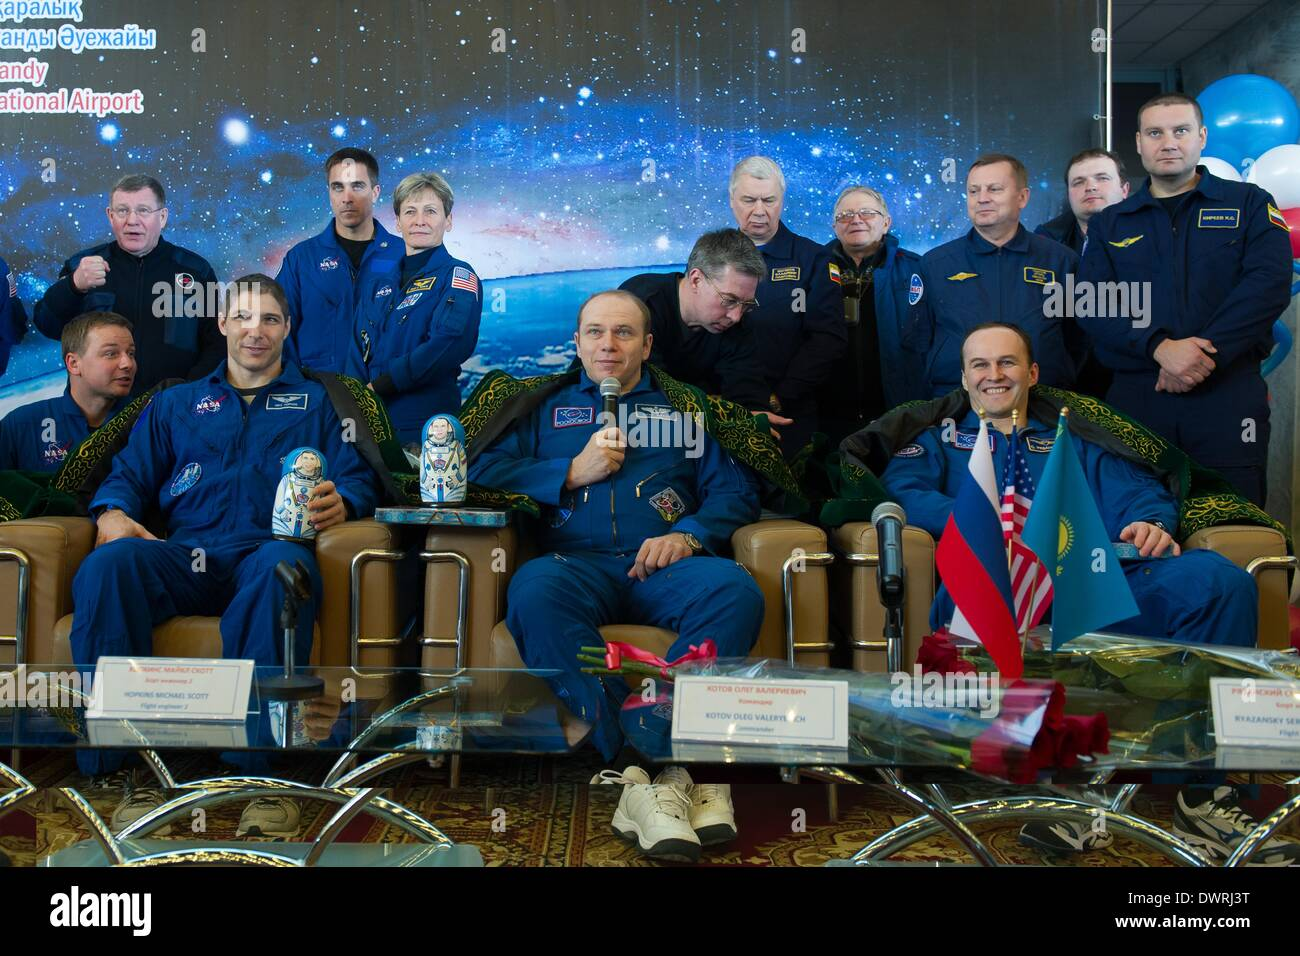 Karaganda airport, Kazakhstan. 11th March, 2014. International Space State Expedition 38 Mike Hopkins of NASA, left, Commander Oleg Kotov of the Russian Federal Space Agency, Roscosmos, center, and, Flight Engineer Sergey Ryazanskiy of Roscosmos during a welcoming ceremony after landing in a Soyuz TMA-10M spacecraft March 11, 2014 held at the Karaganda airport, Kazakhstan. Hopkins, Kotov and Ryazanskiy returned to Earth after five and a half months onboard the International Space Station. Credit:  Planetpix/Alamy Live News - Stock Image